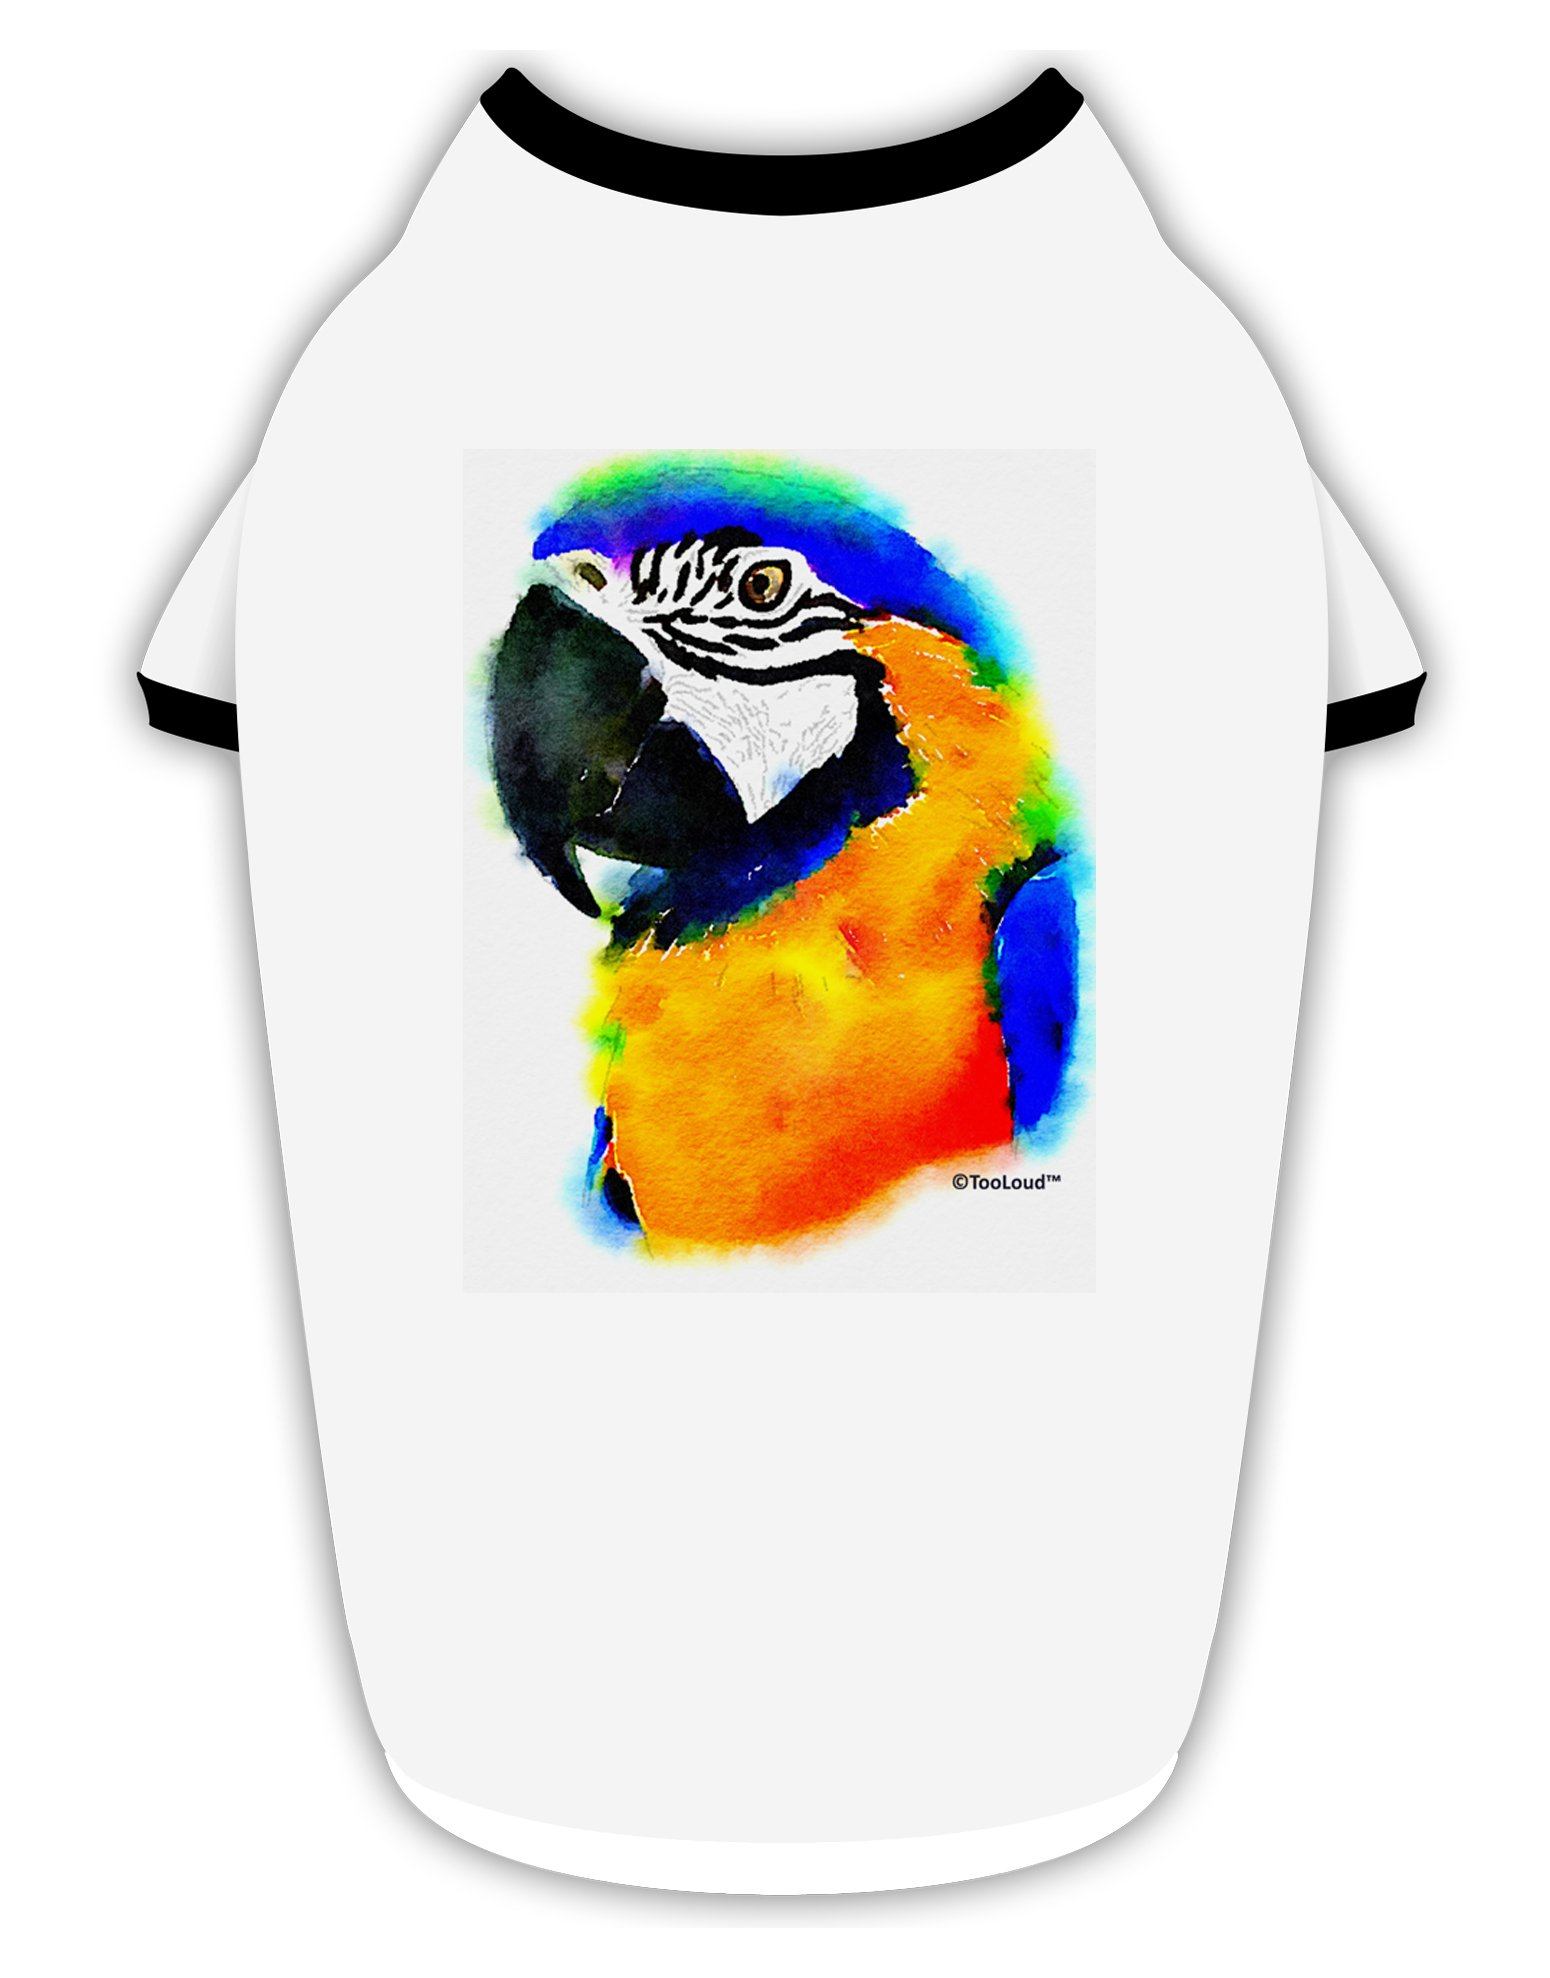 TooLoud Brightly Colored Parrot Watercolor Cotton Dog Shirt White with Black XL by TooLoud